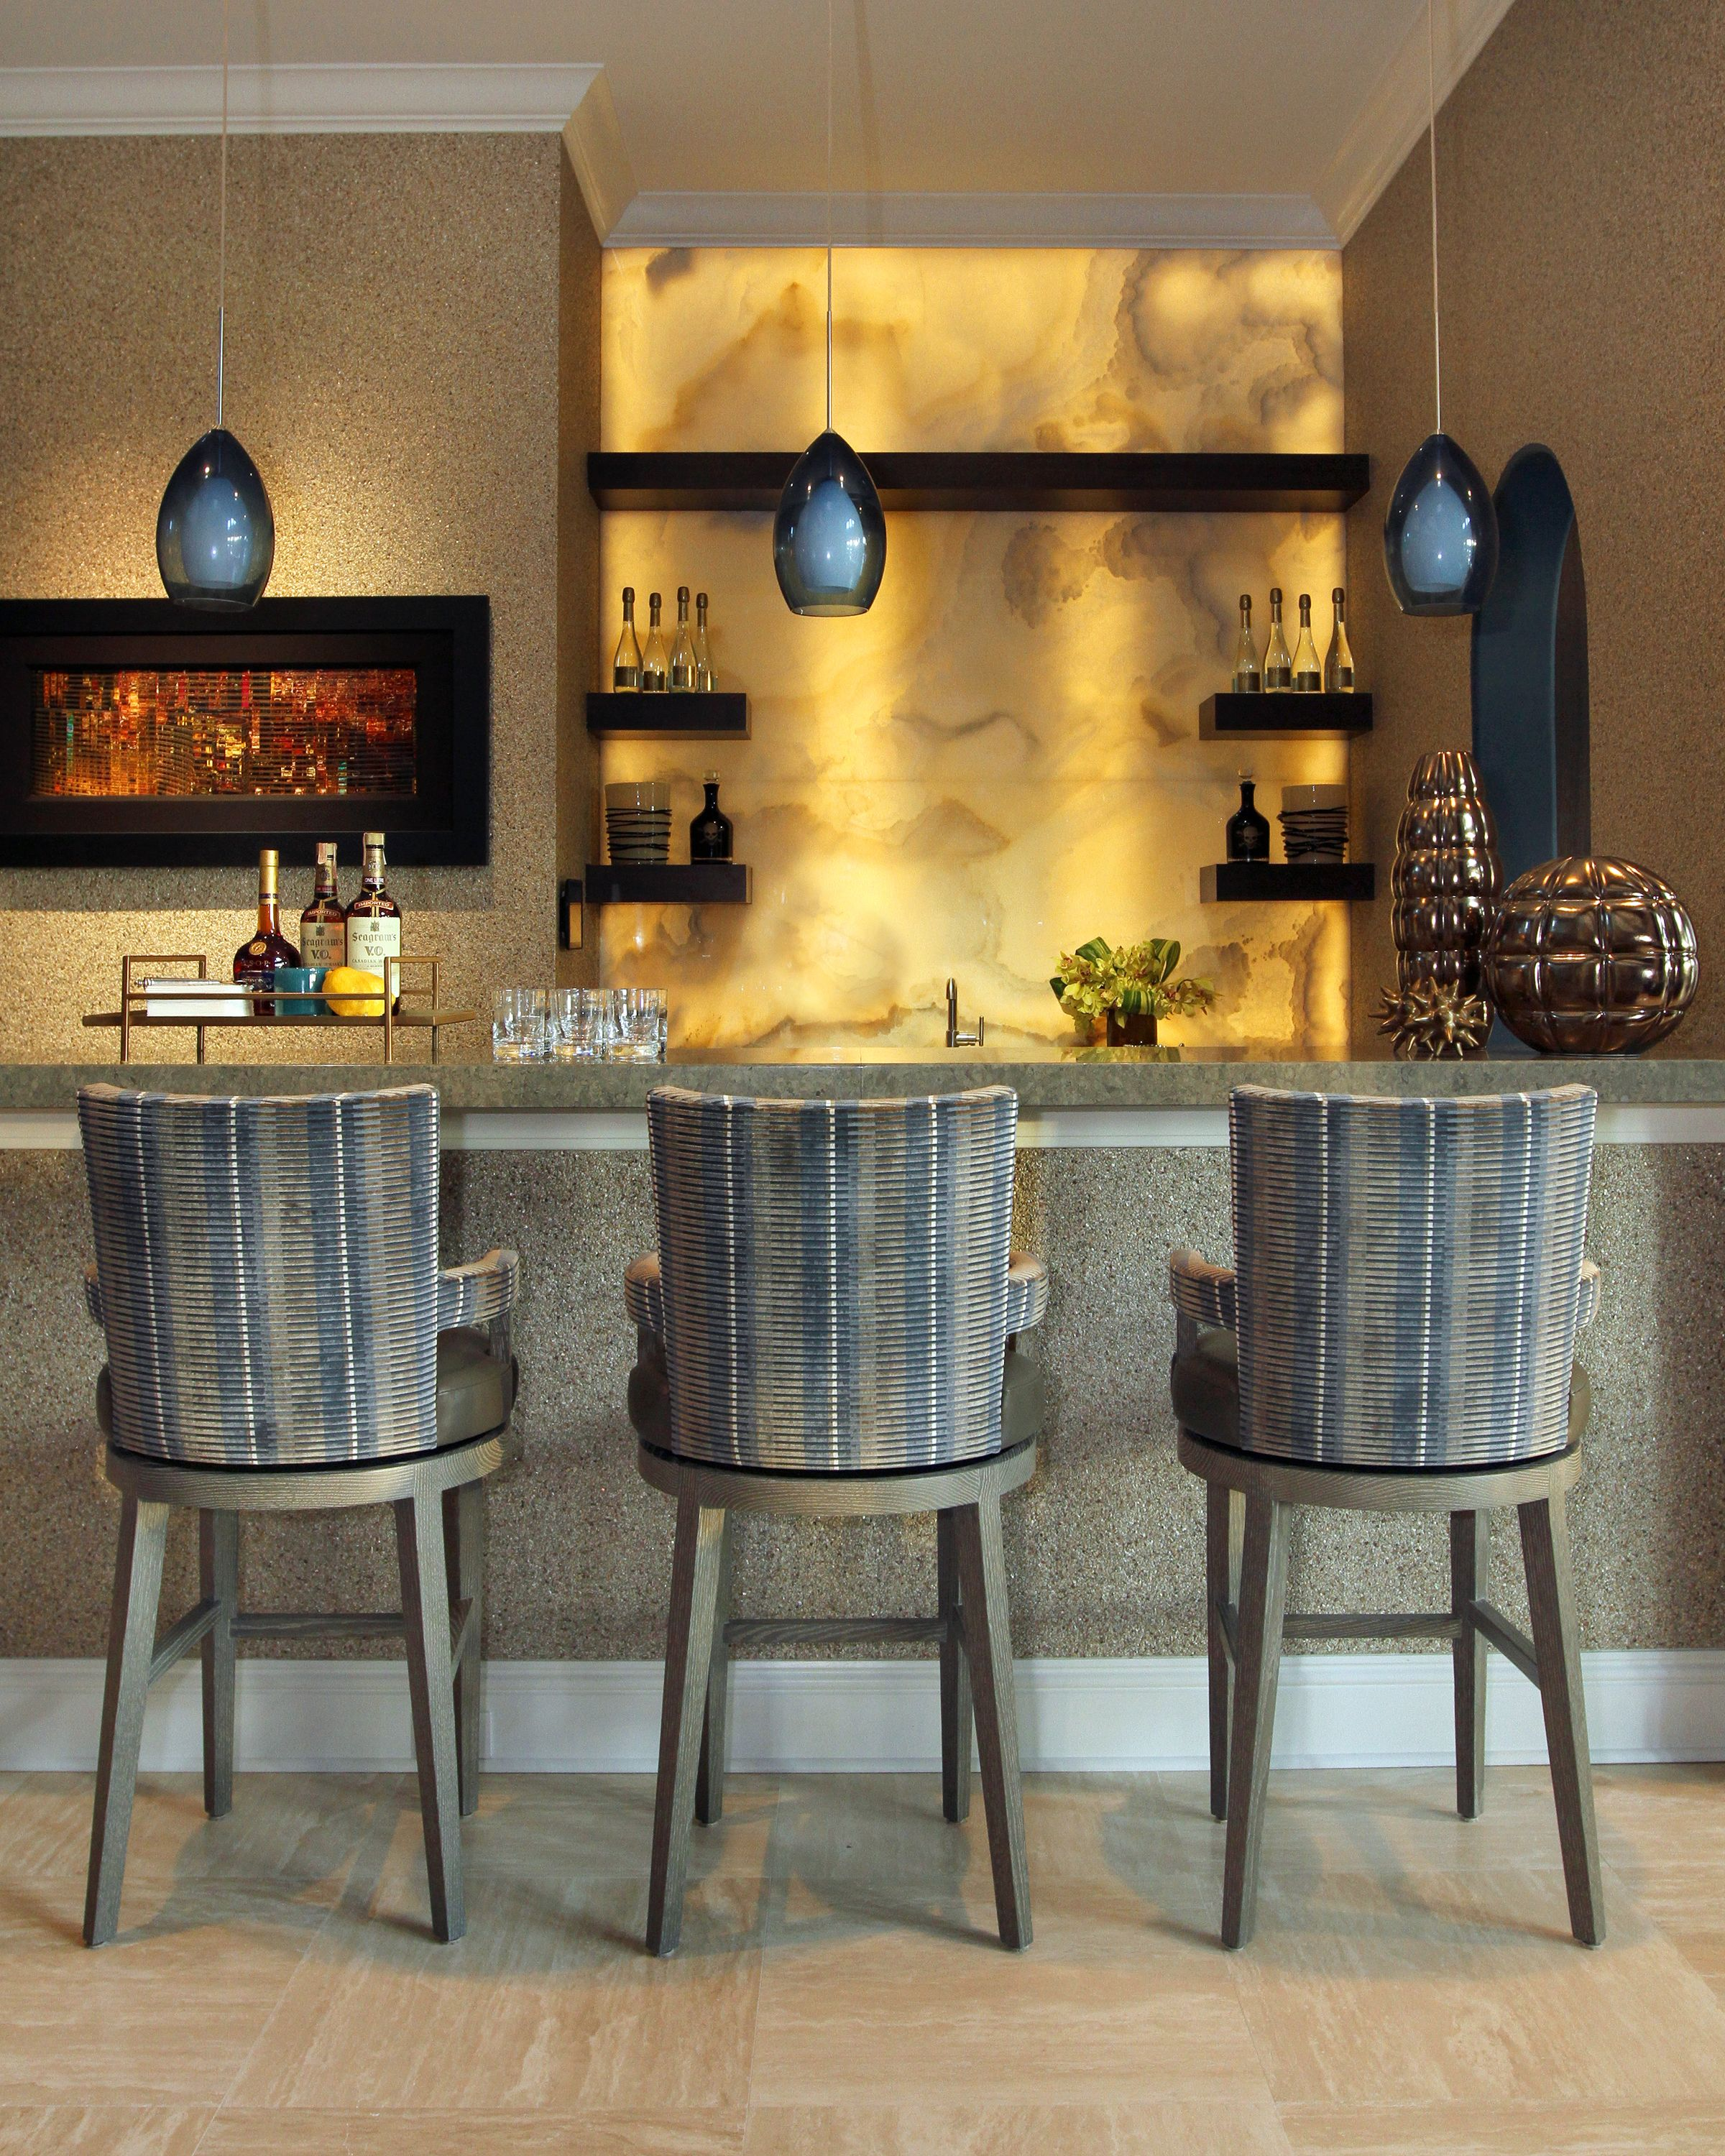 The backlit Onyx wall creates a great focal point for the bar ...